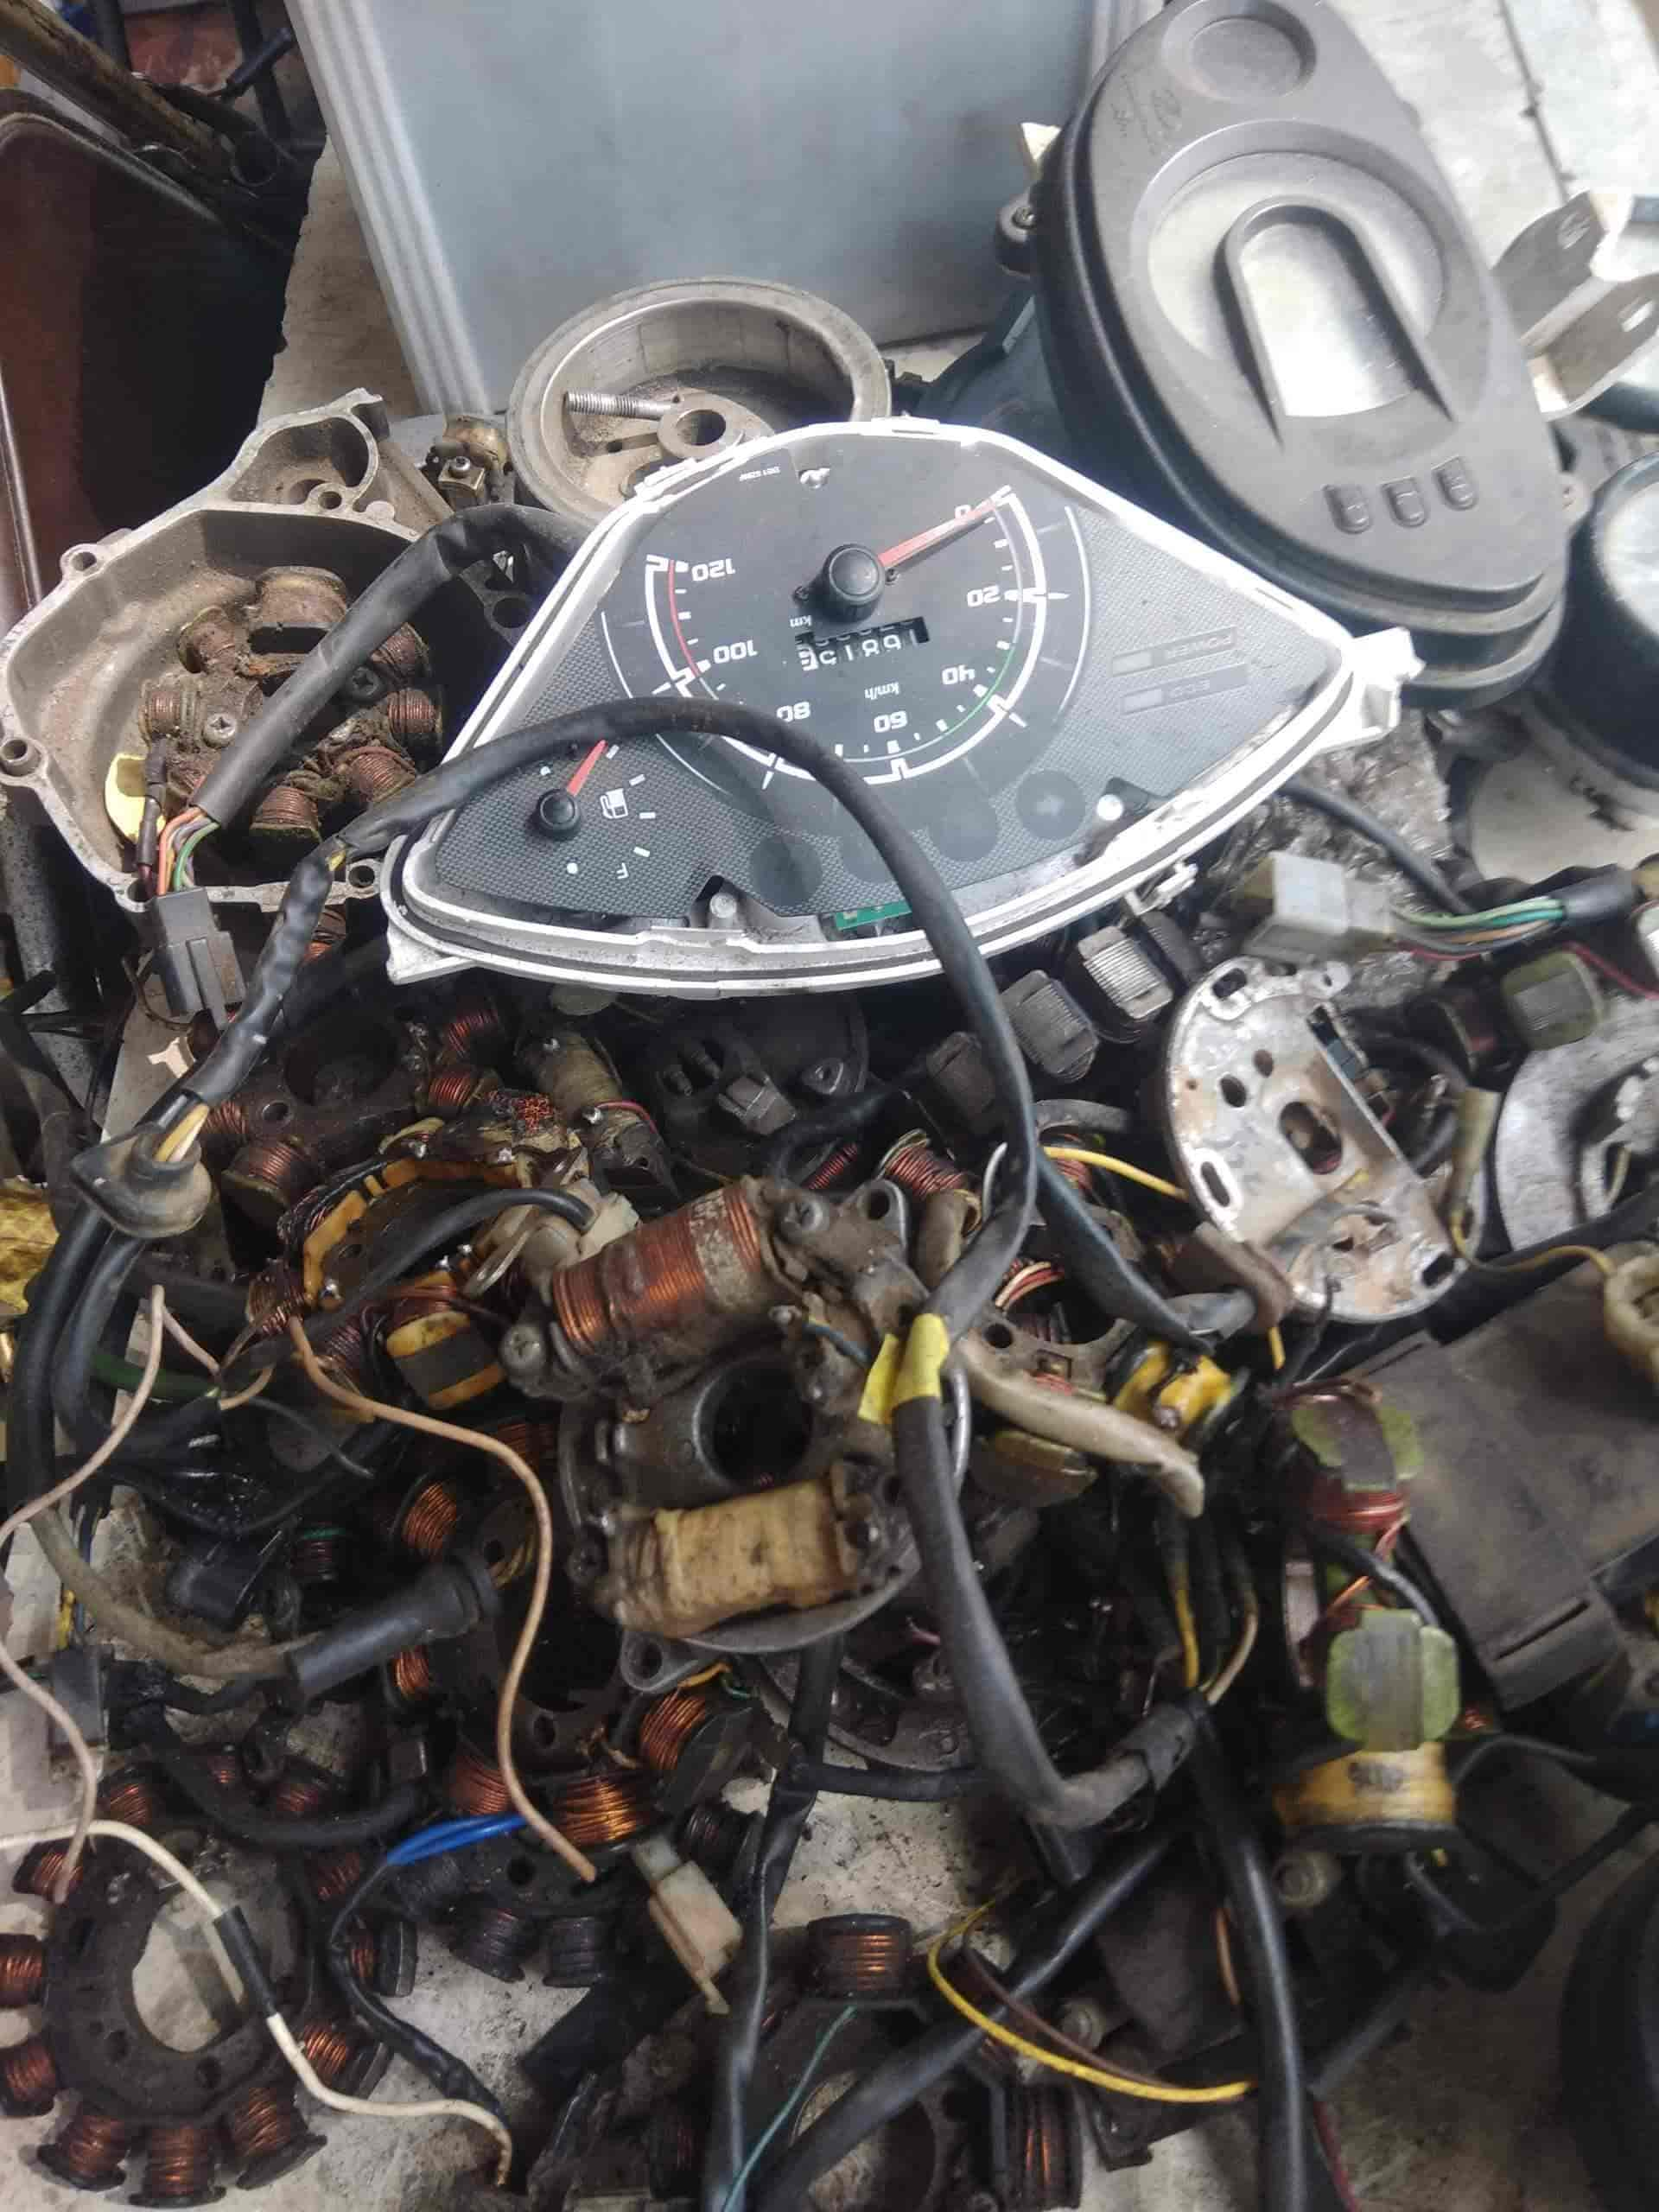 Sahara Auto Electricals Meter Works Photos Kr Mohalla Mysore Car Electric Repair Of Electrical Wiring In The Automobile